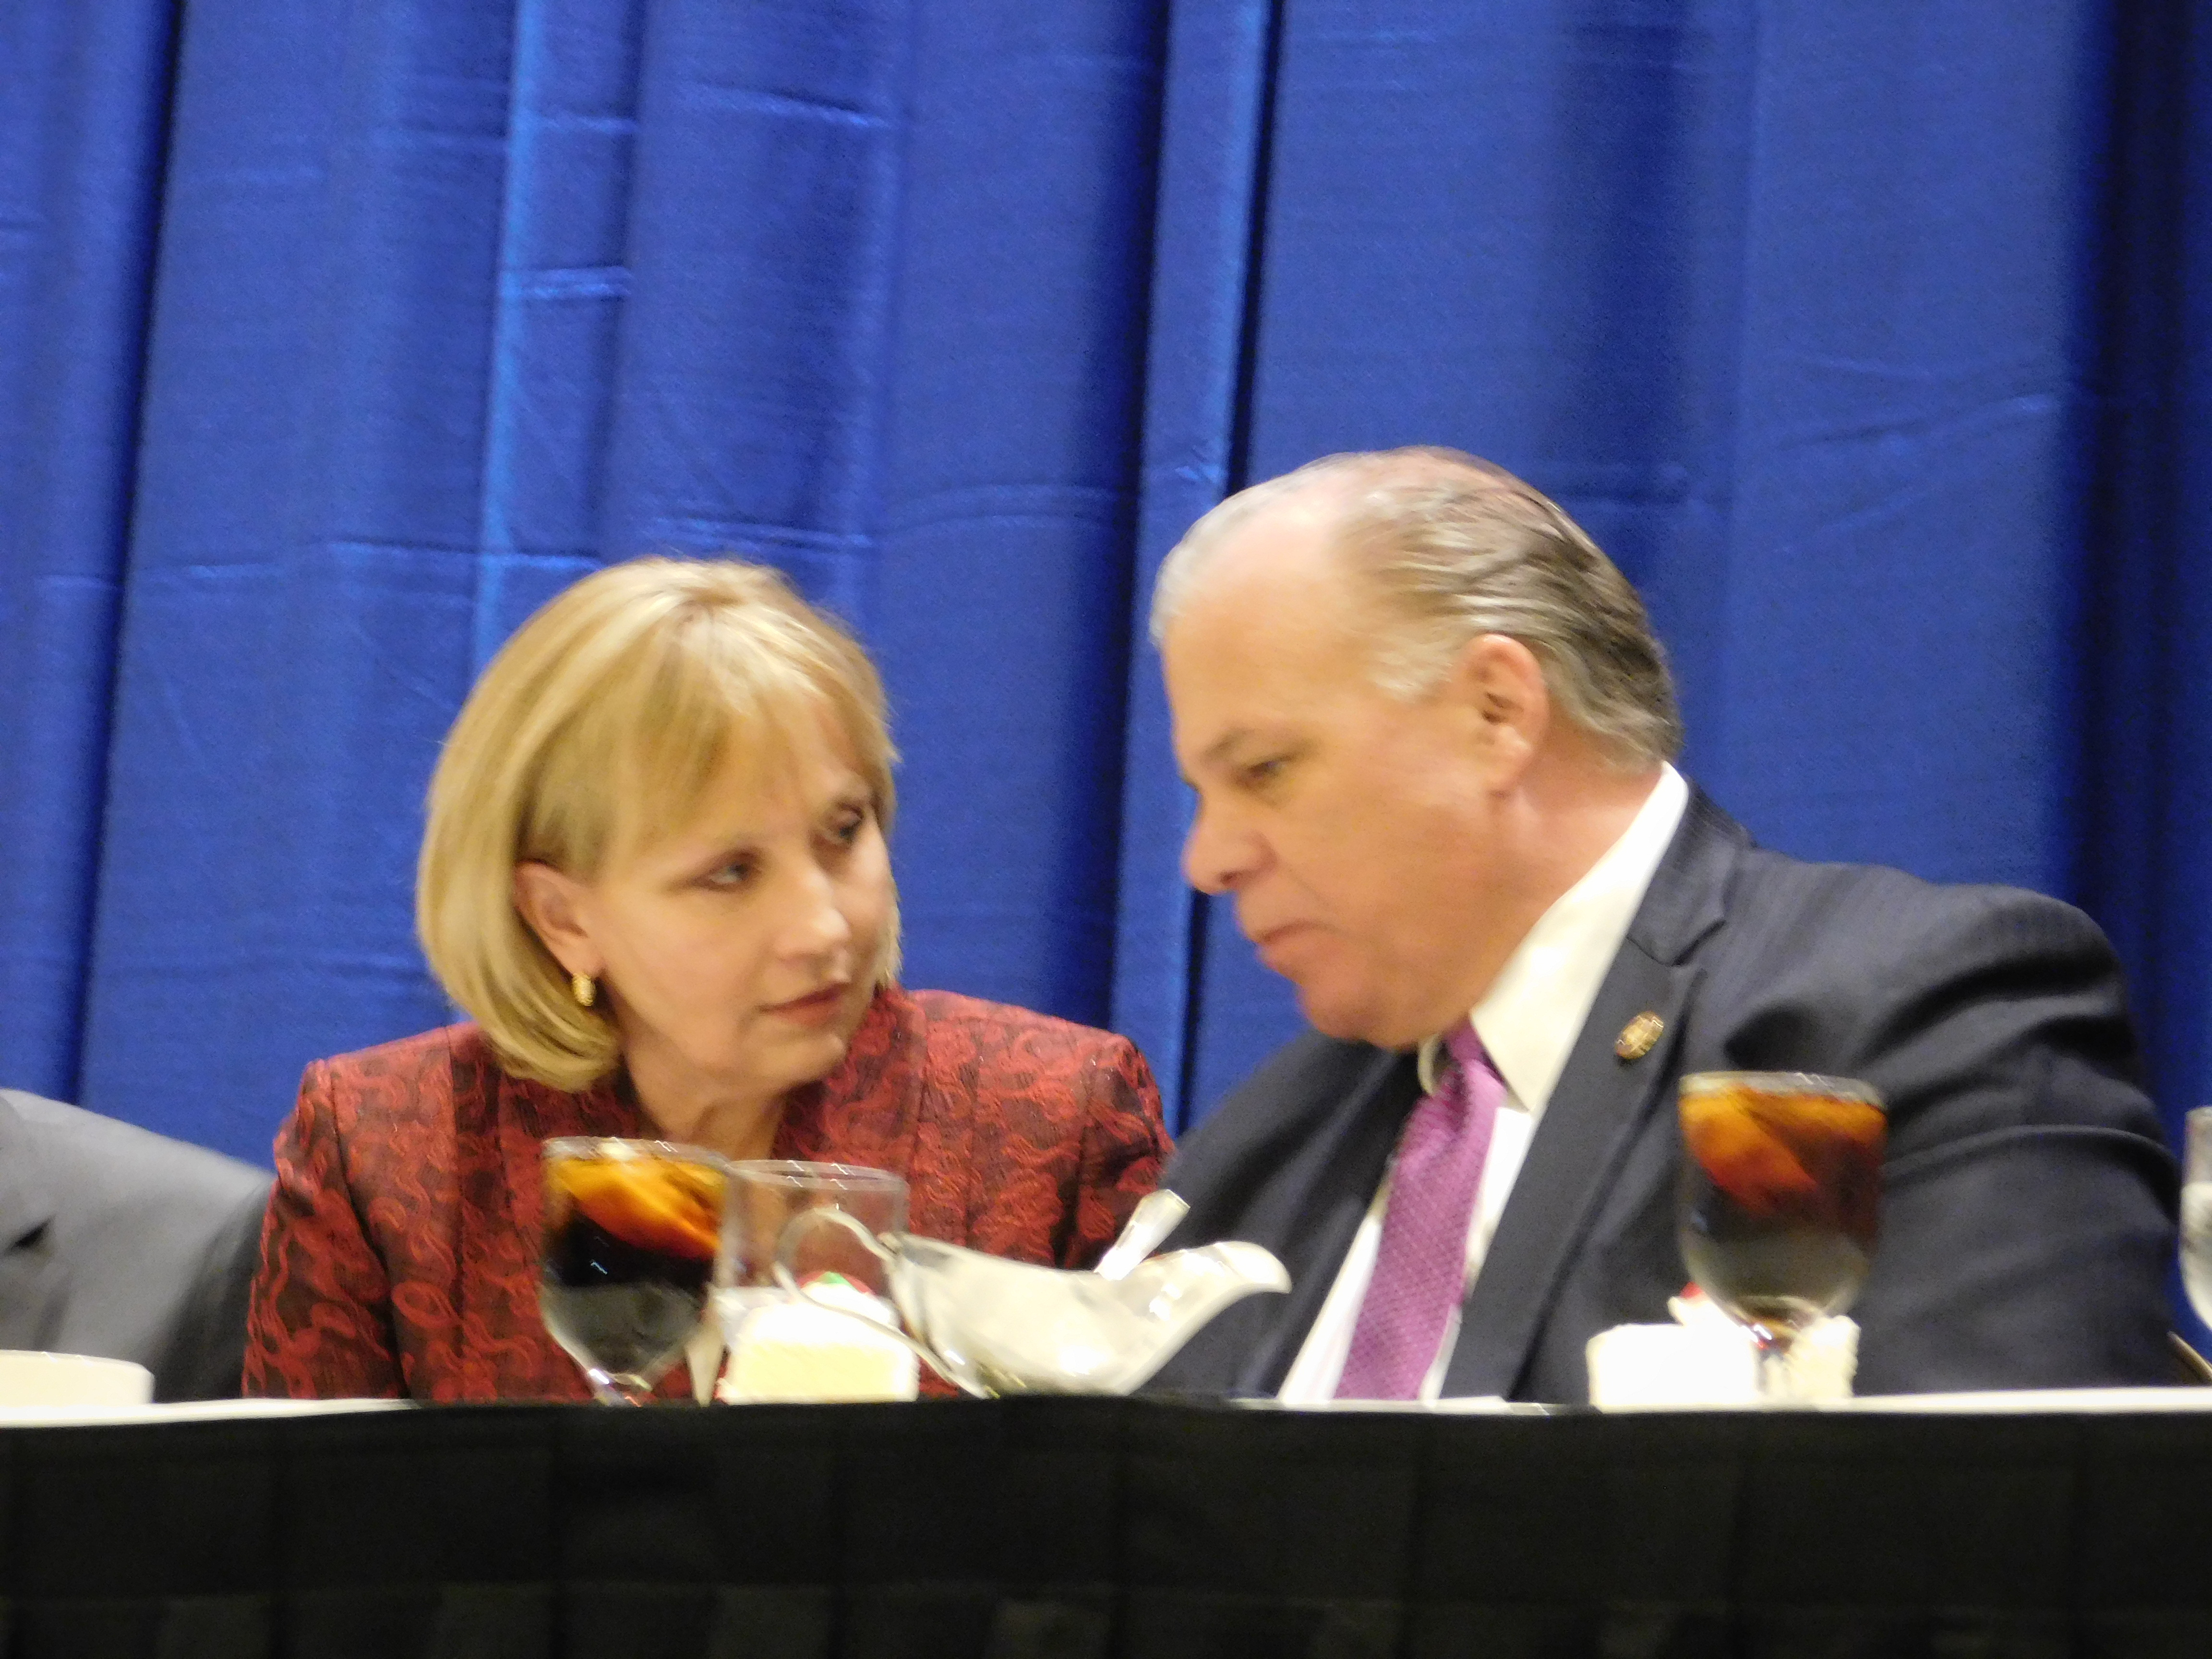 Guadagno and Senate President Steve Sweeney sit at the head table during Christie's speech.